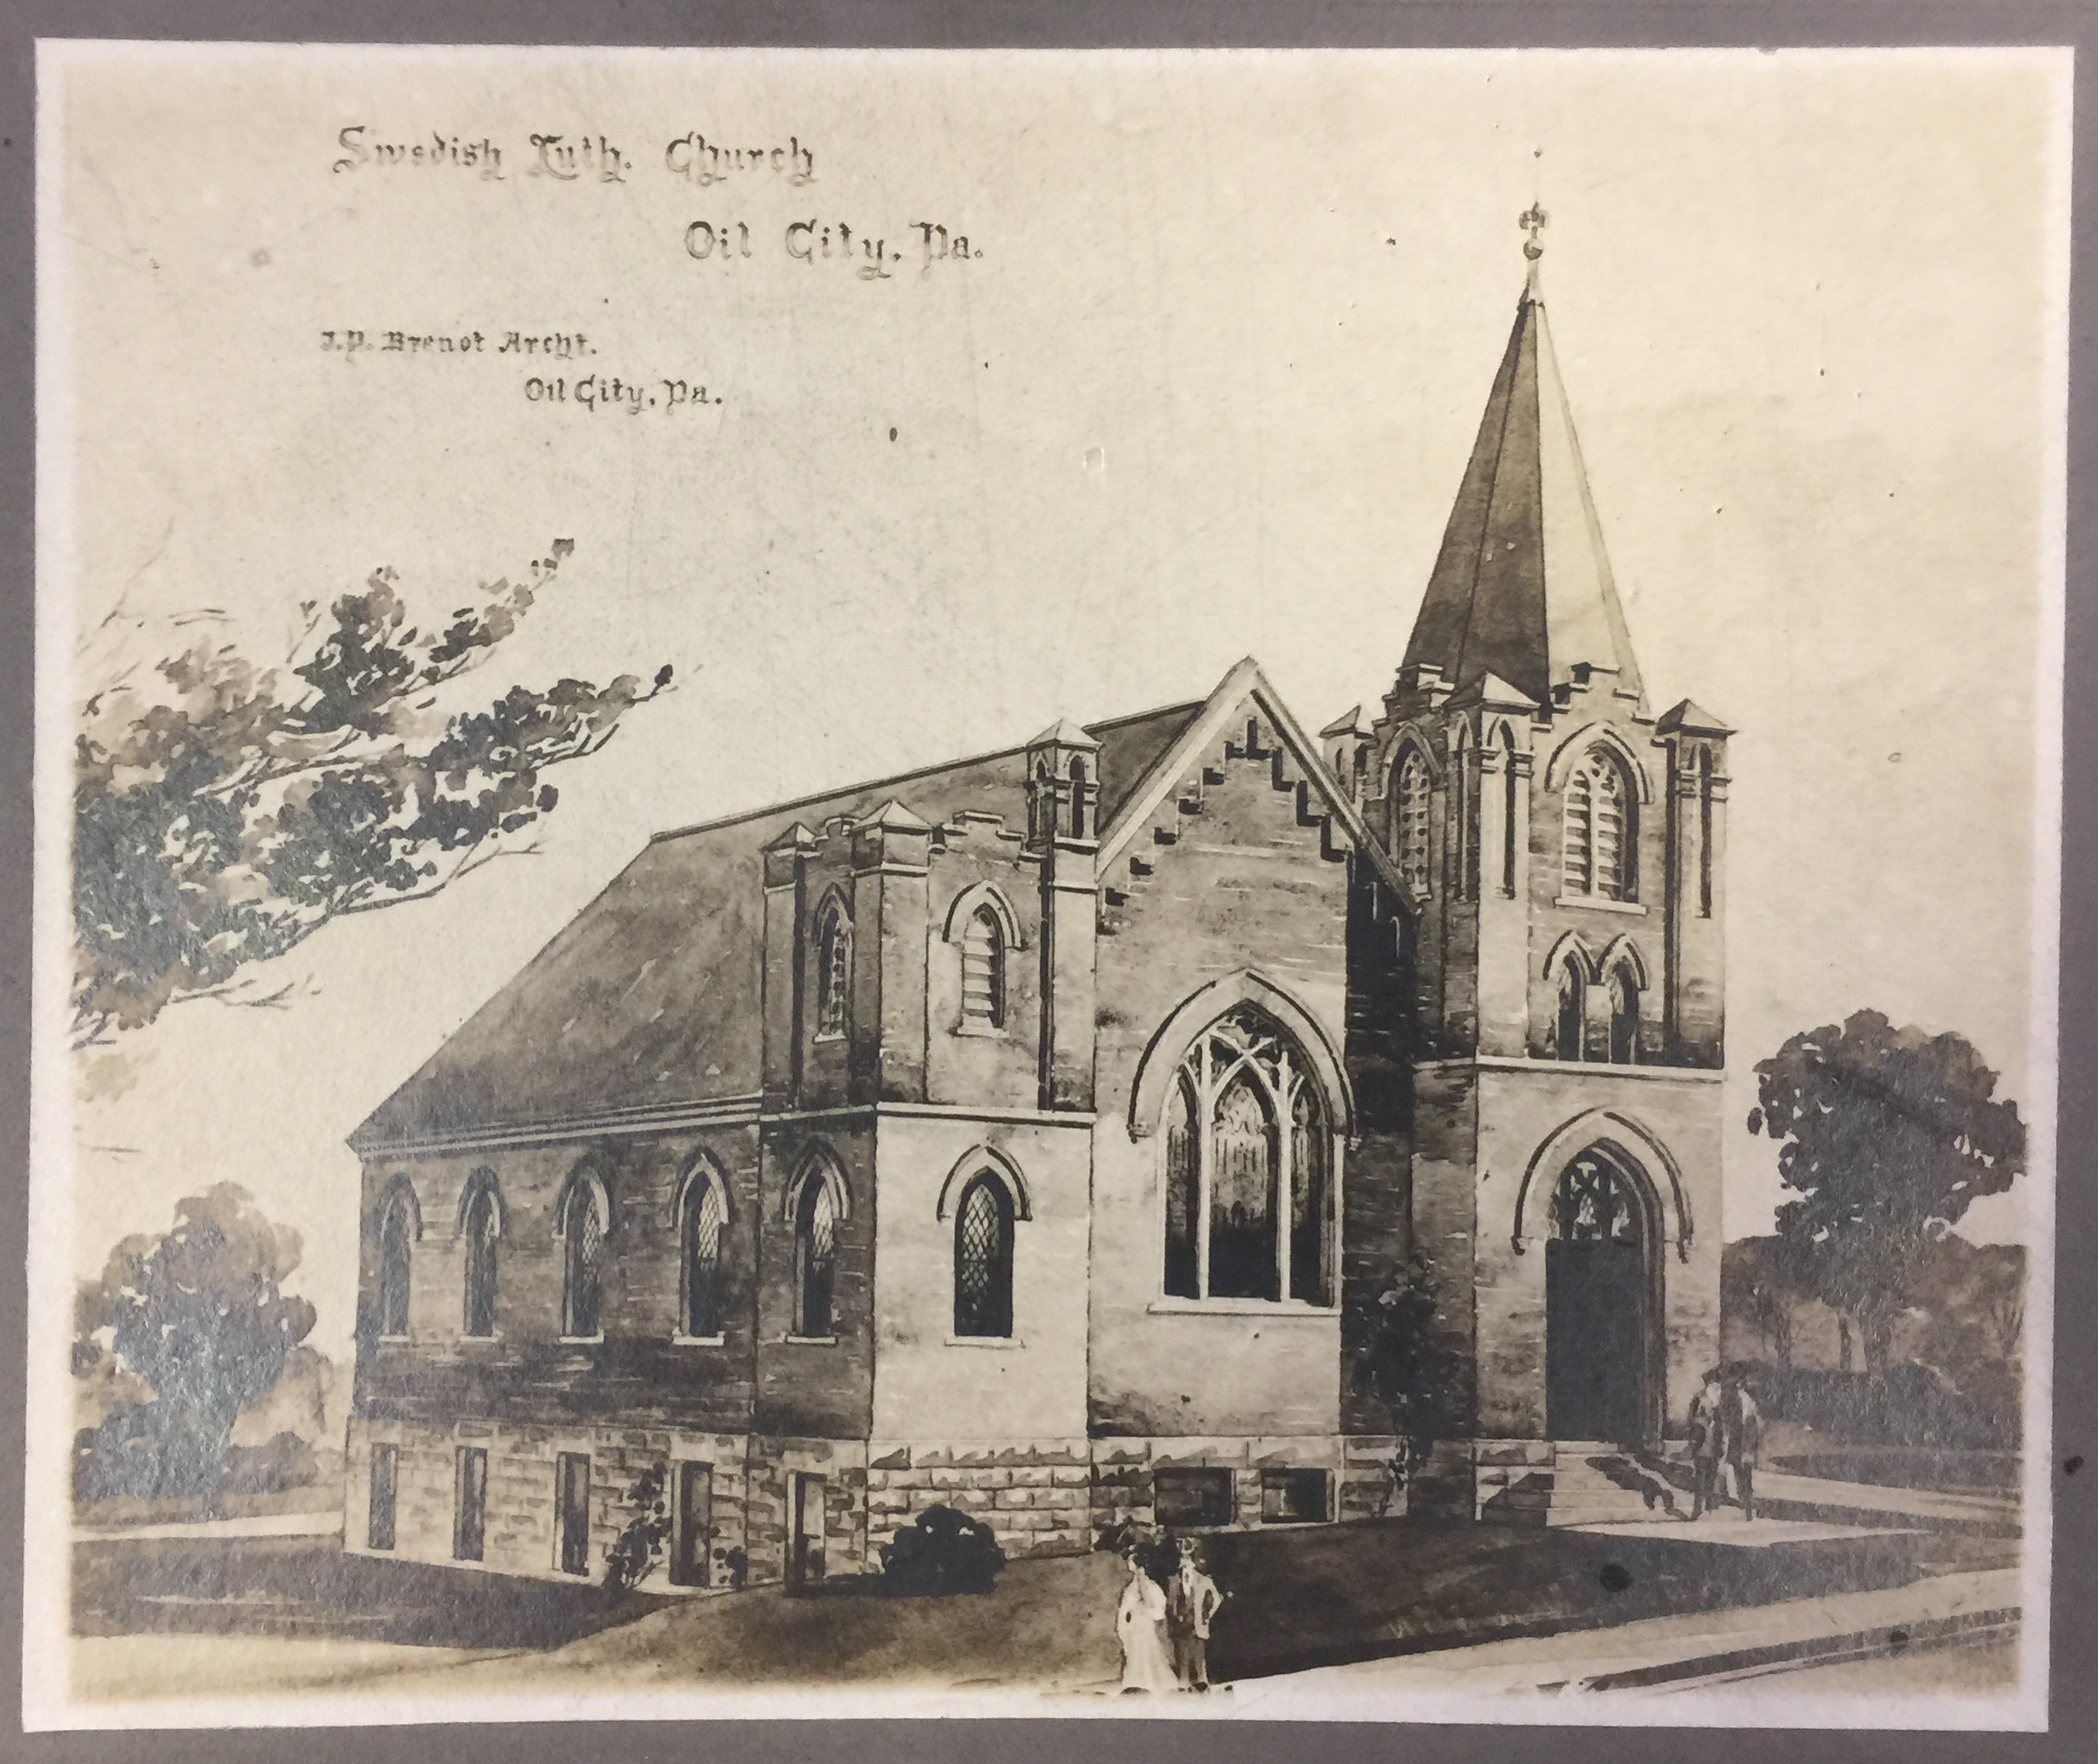 Architect's sketch of Zion Lutheran Church - 1907